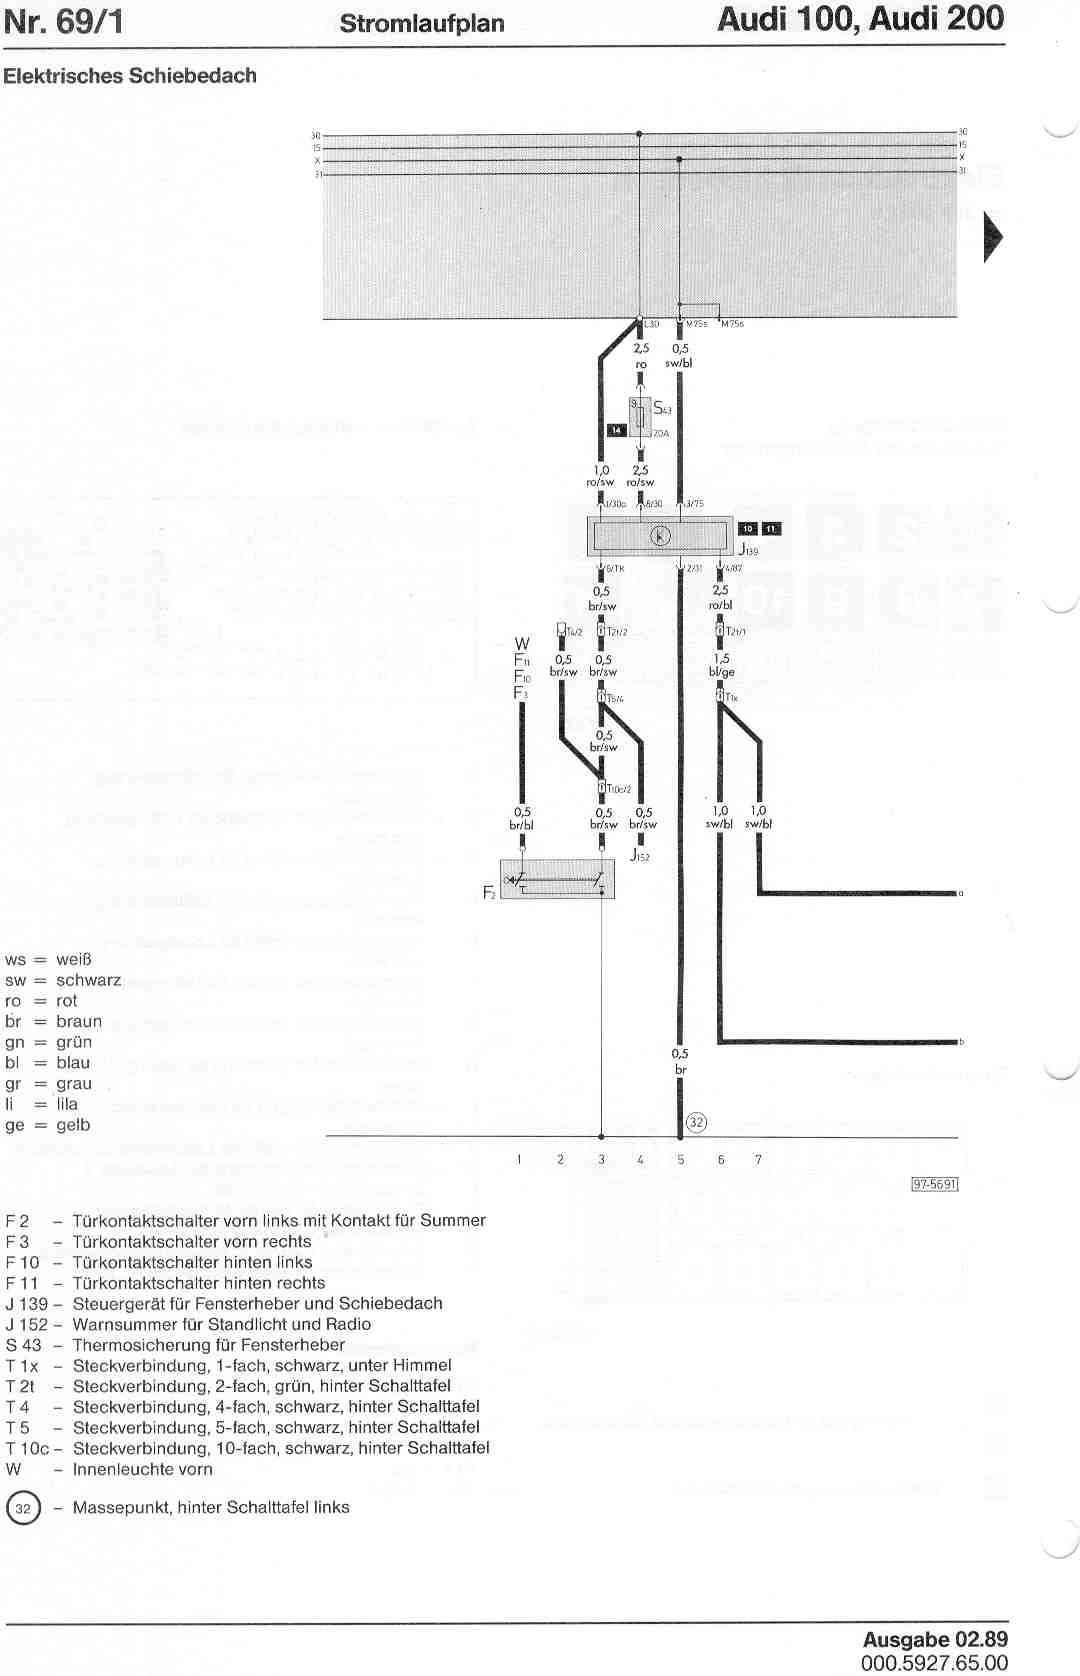 Audi 100 Wiring Diagram Library Esd 200 Factory Diagrams Page 1